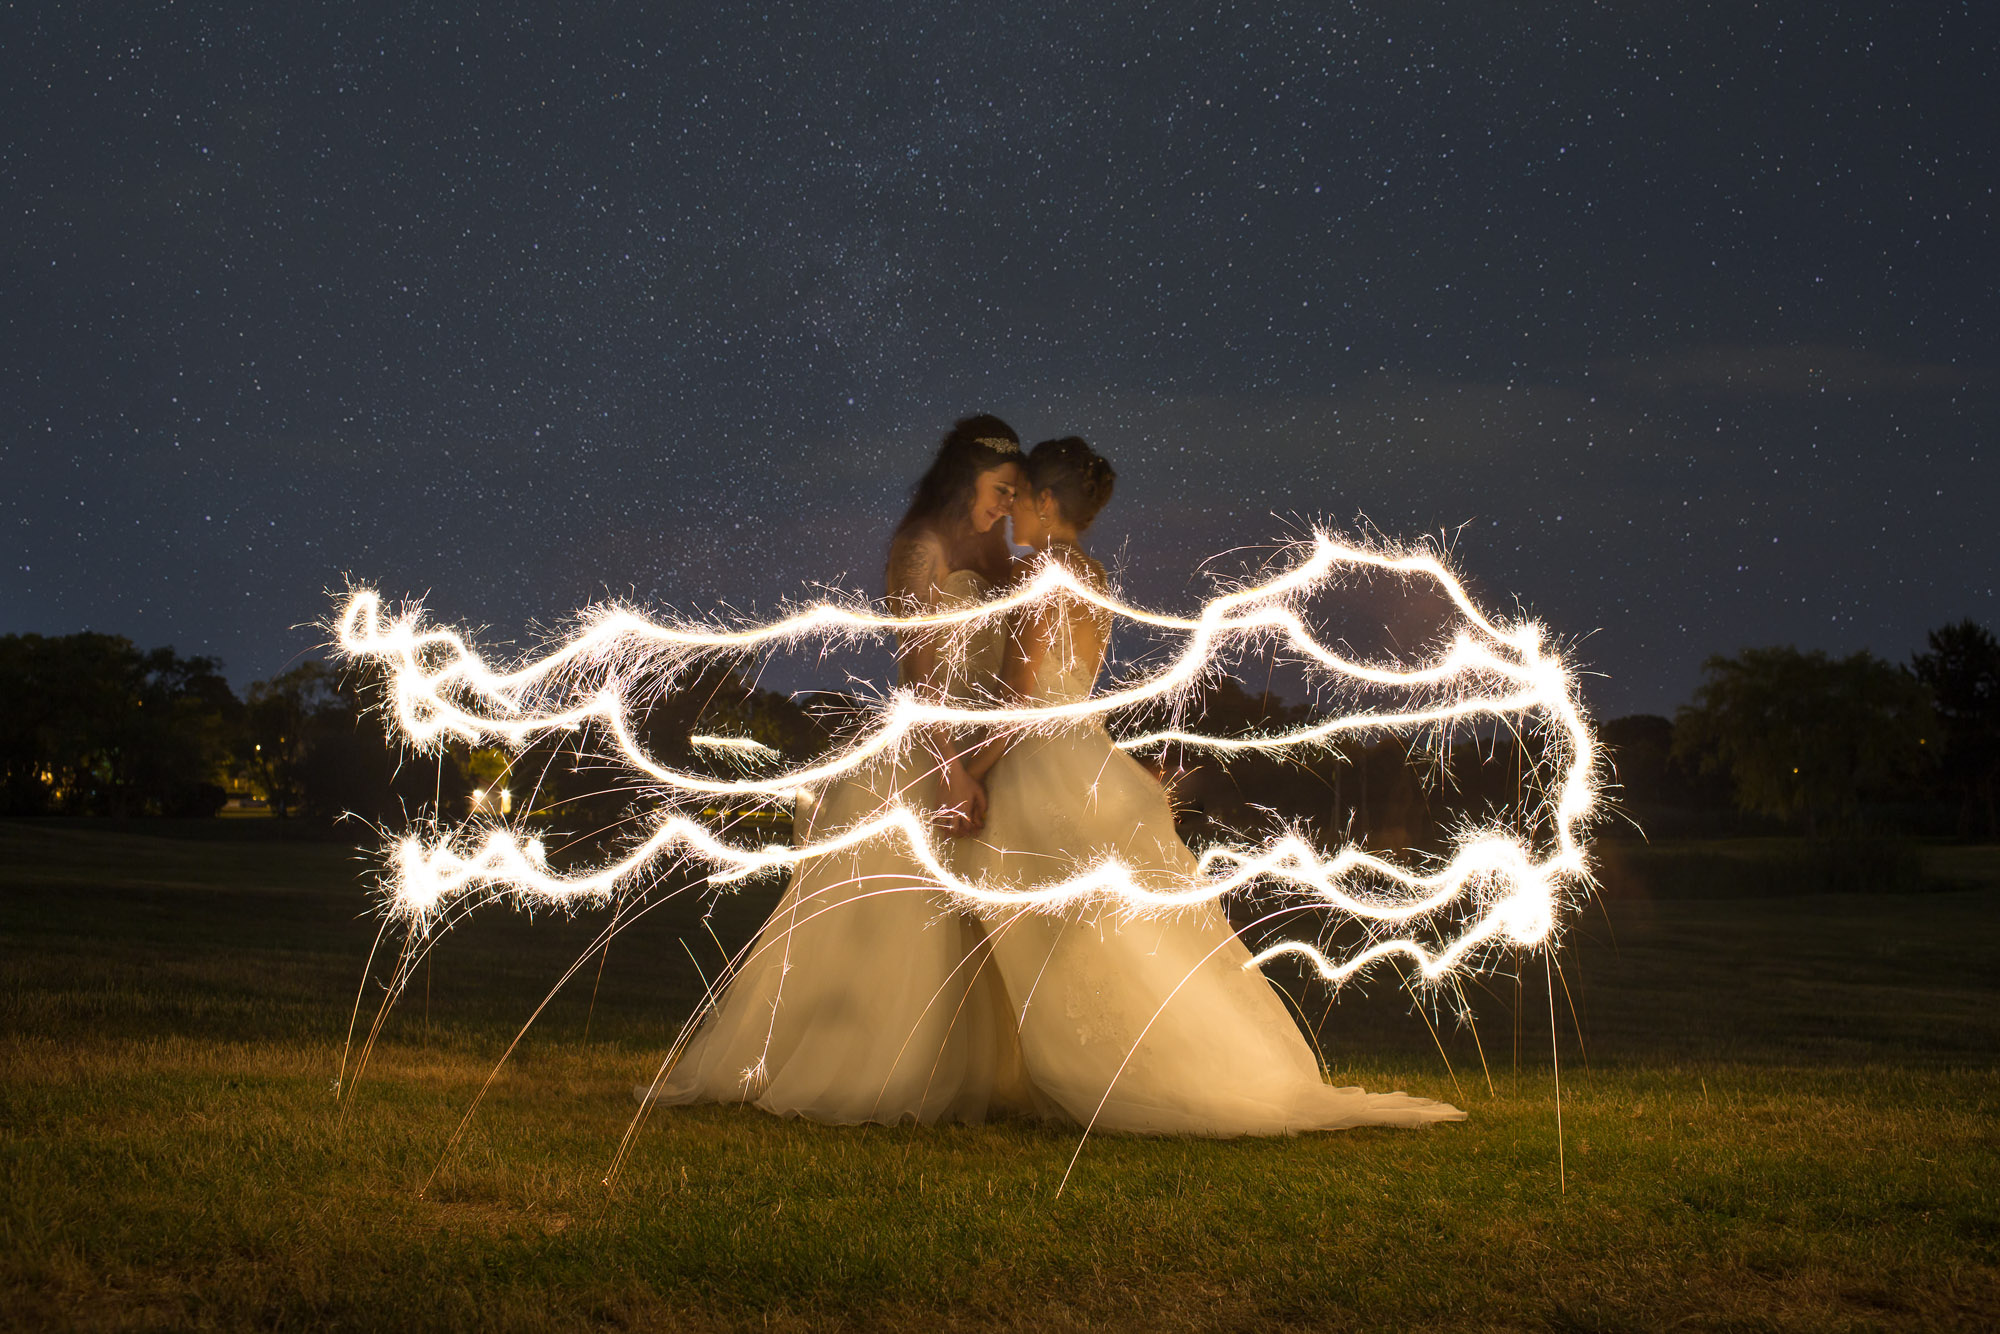 boston-photographer-26-north-studios-wedding-sparkler-photo.jpg